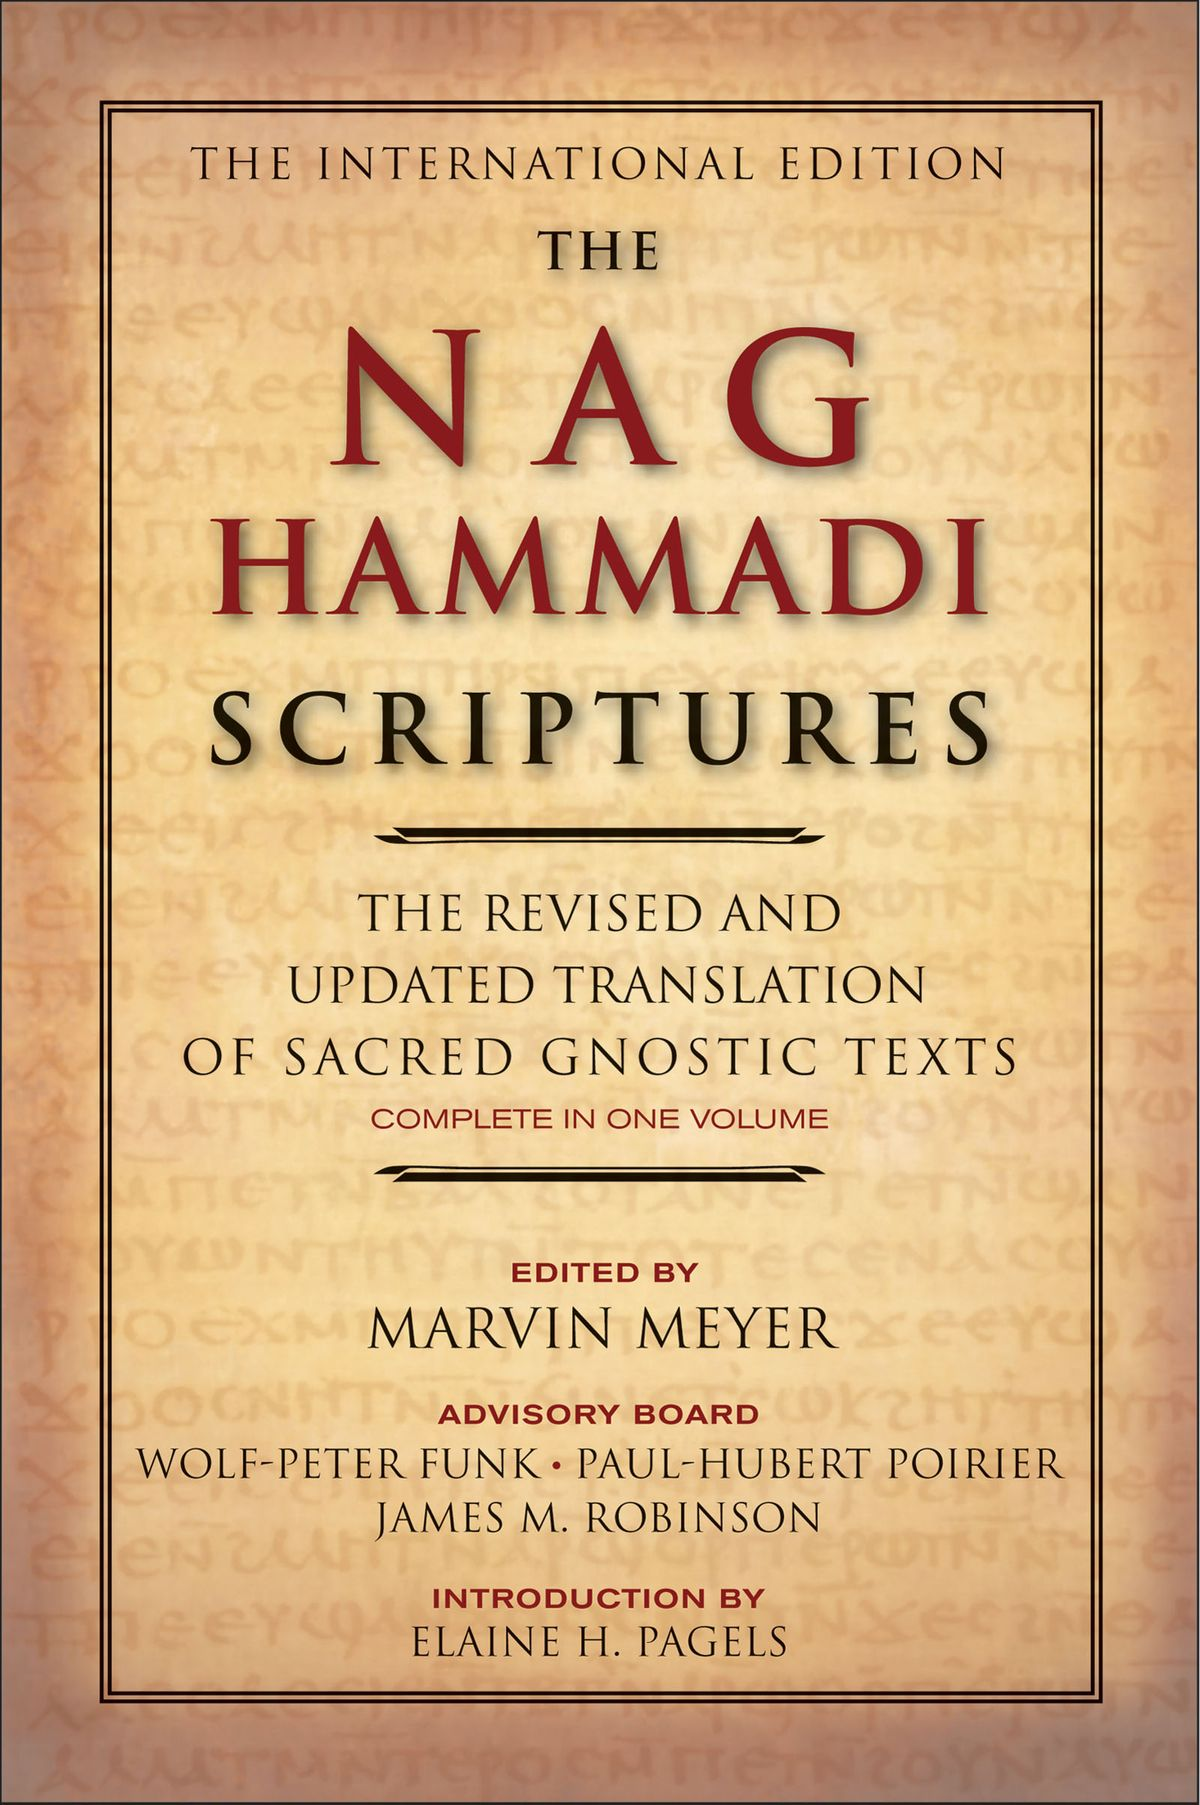 the-nag-hammadi-scriptures.jpg